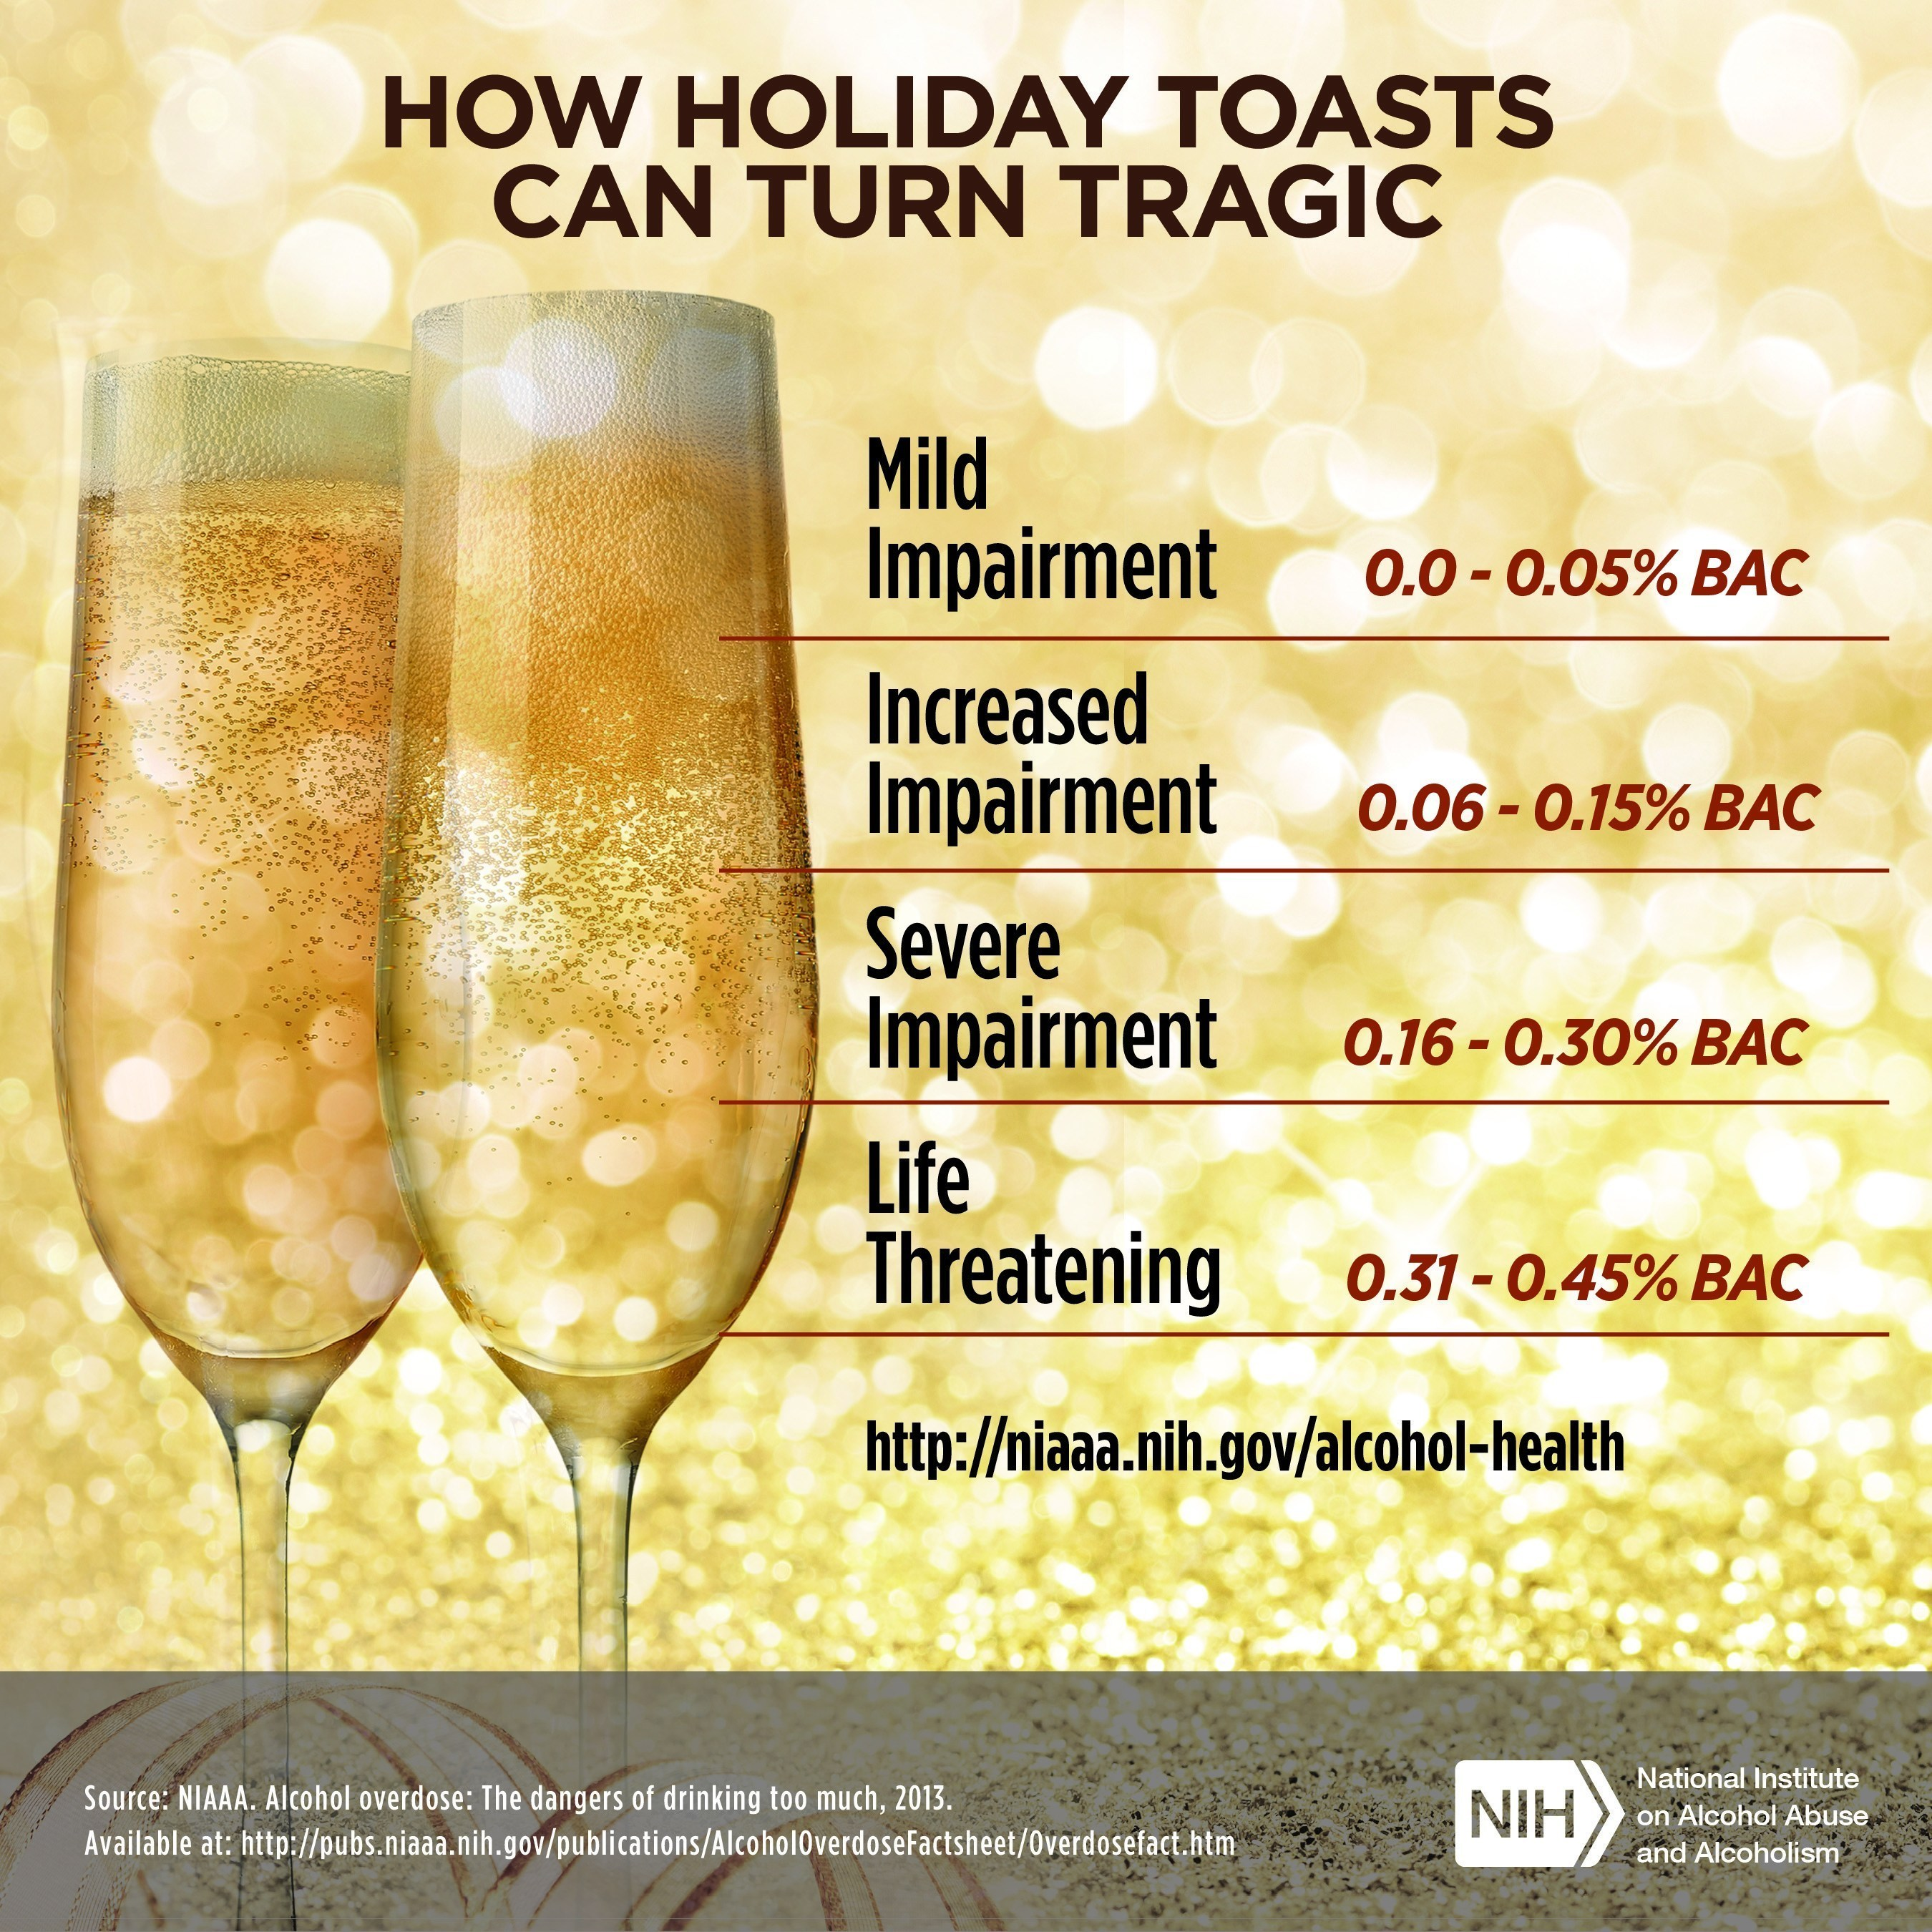 Source: National Institute on Alcohol Abuse and Alcoholism, National Institutes of Health. Visit www.niaaa.nih.gov for more information.